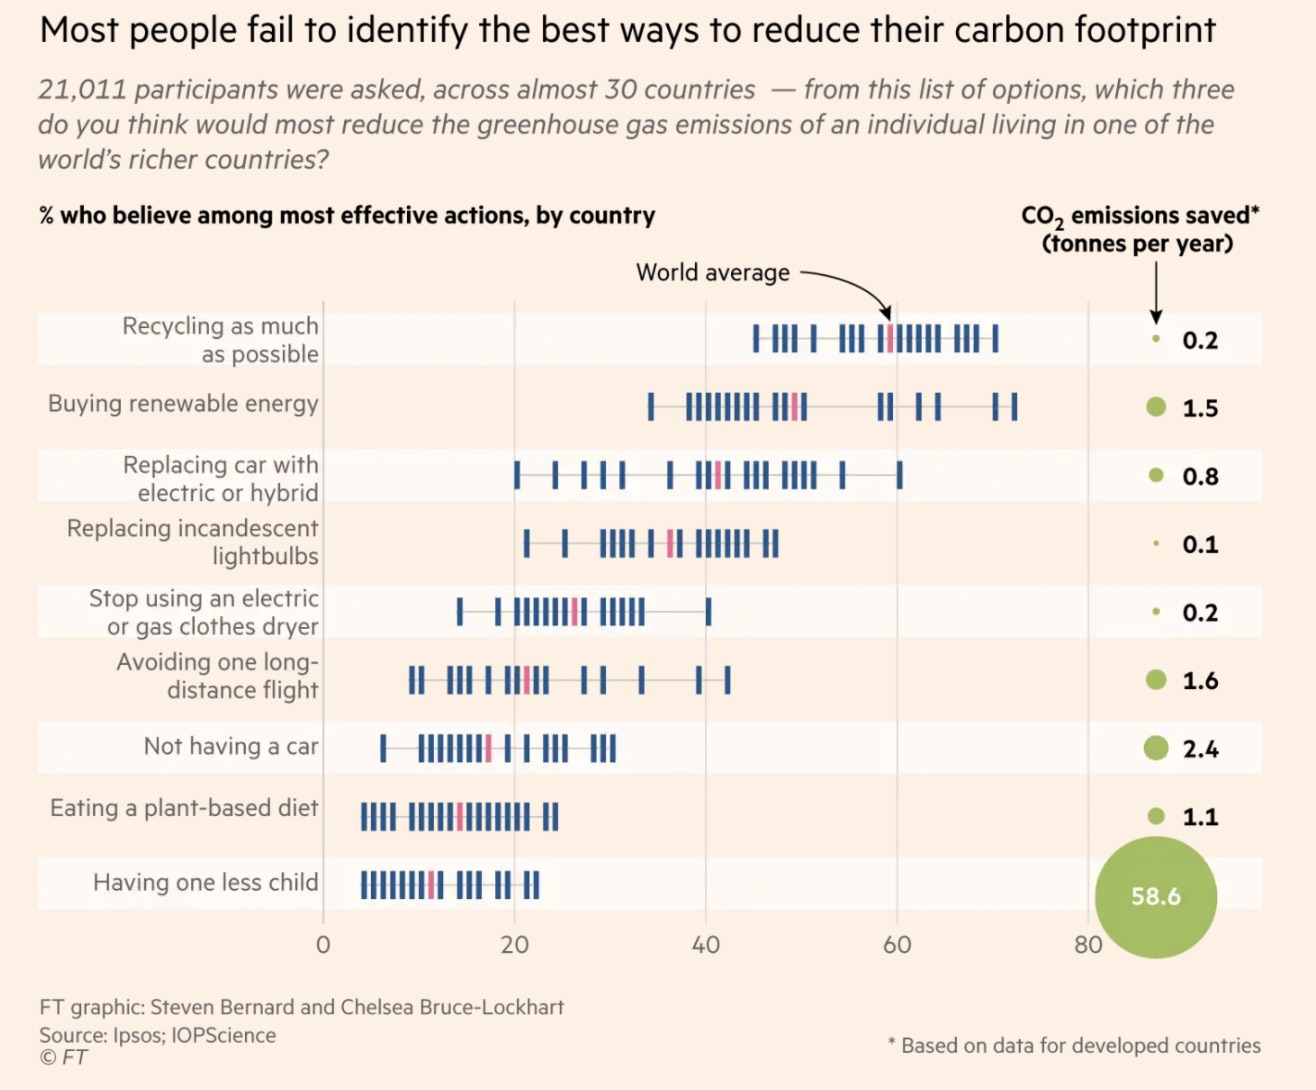 Carbon Footprint Misconceptions